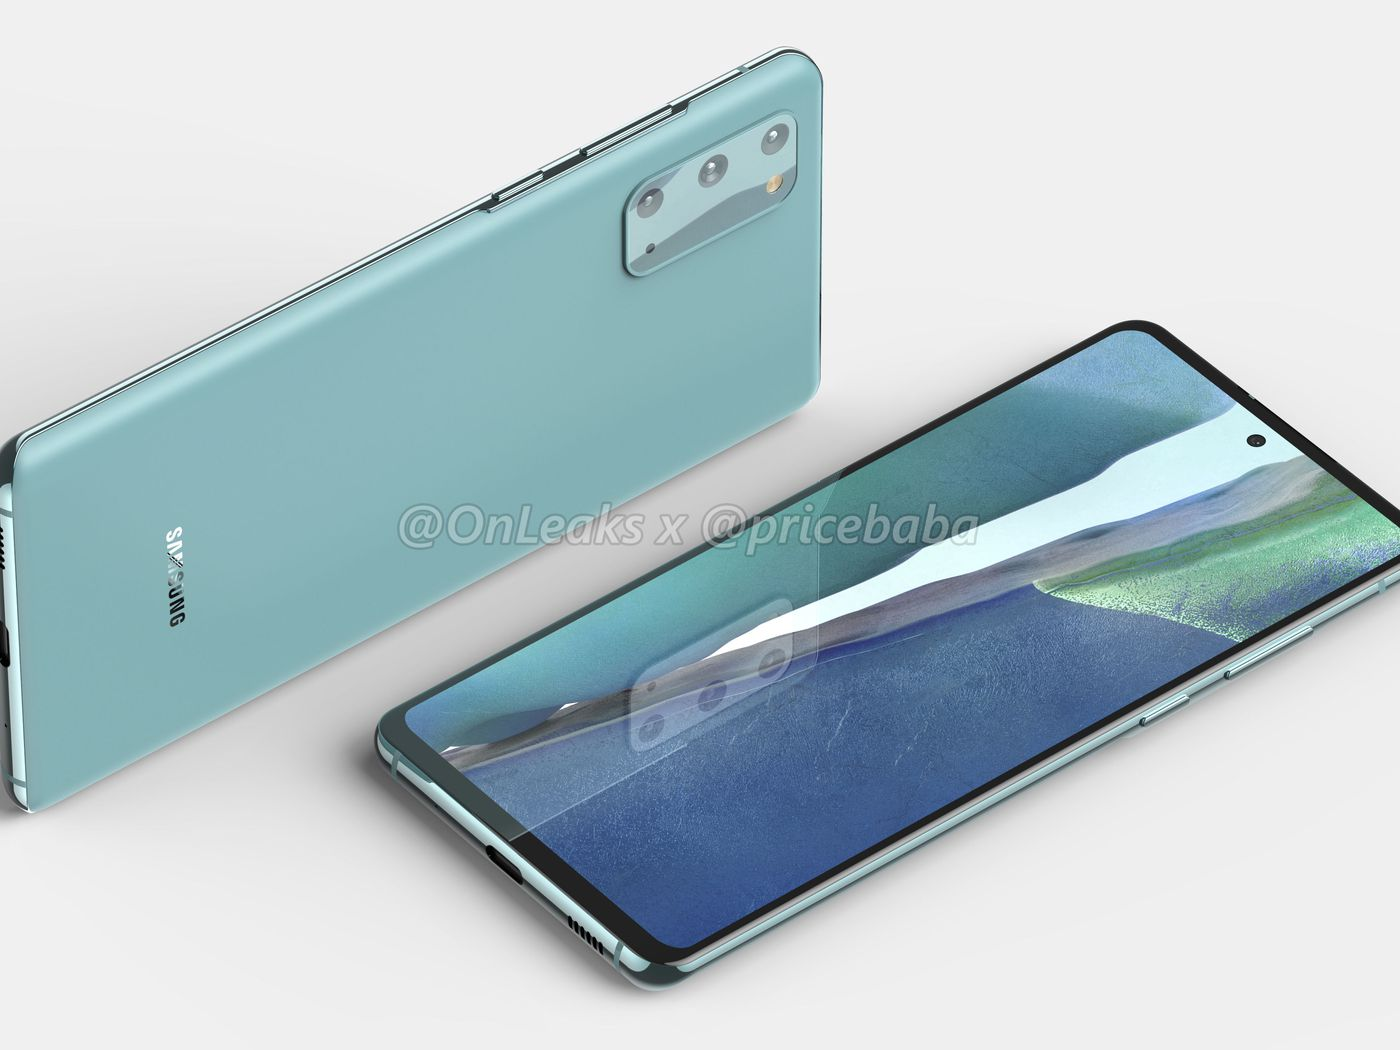 More Affordable Samsung Galaxy S20 Fan Edition Emerges In Leaked Renders The Verge